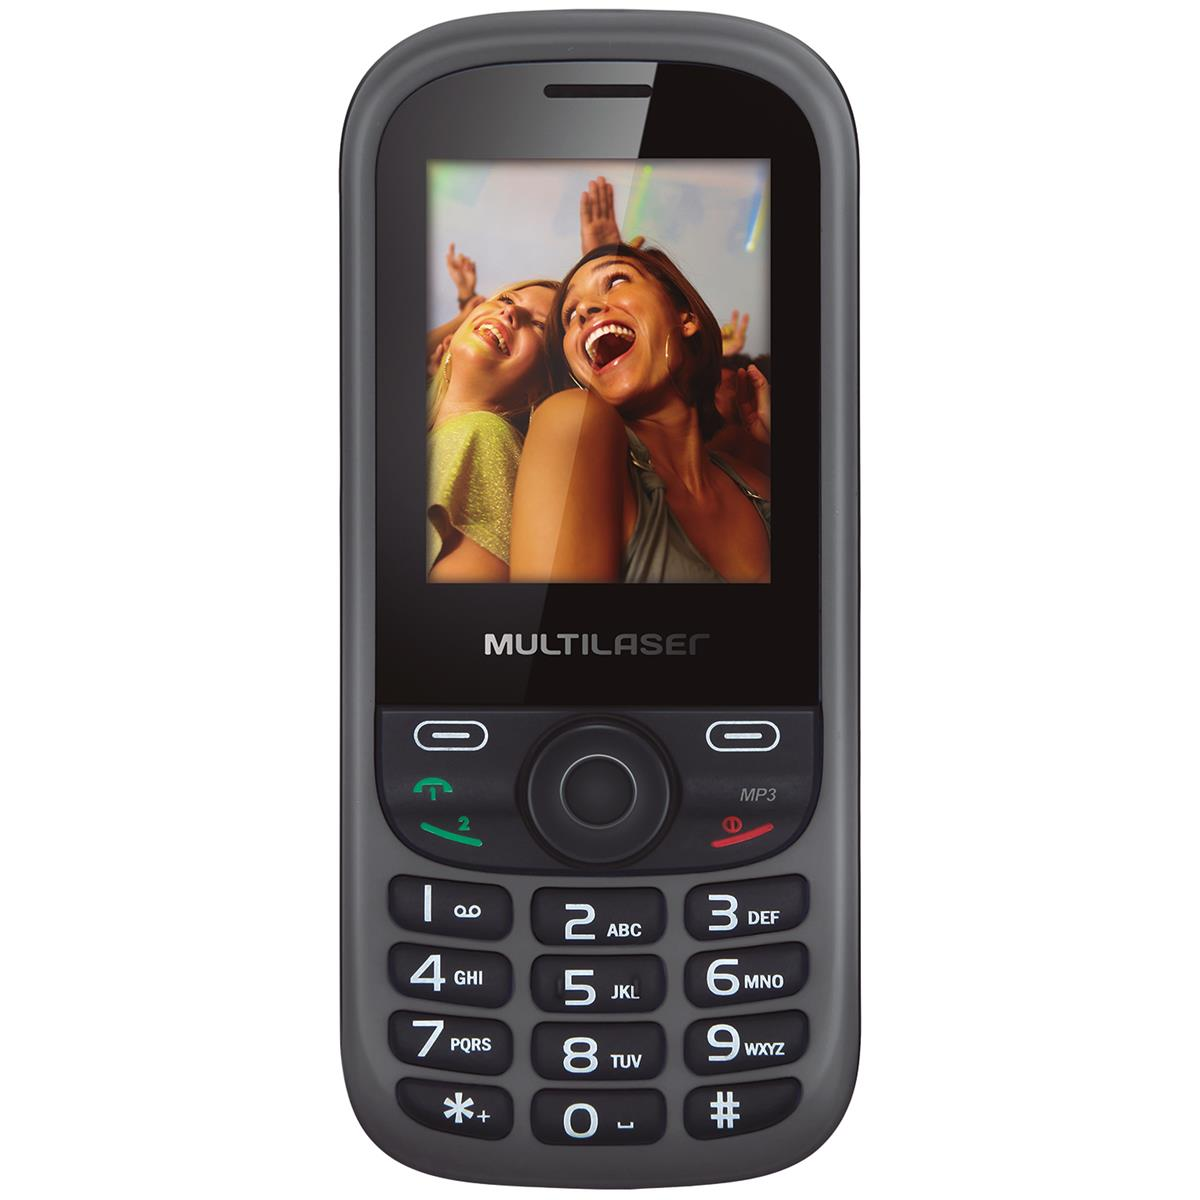 Celular Up 2Chip Cam Preto E Cinza P3292 Multilaser